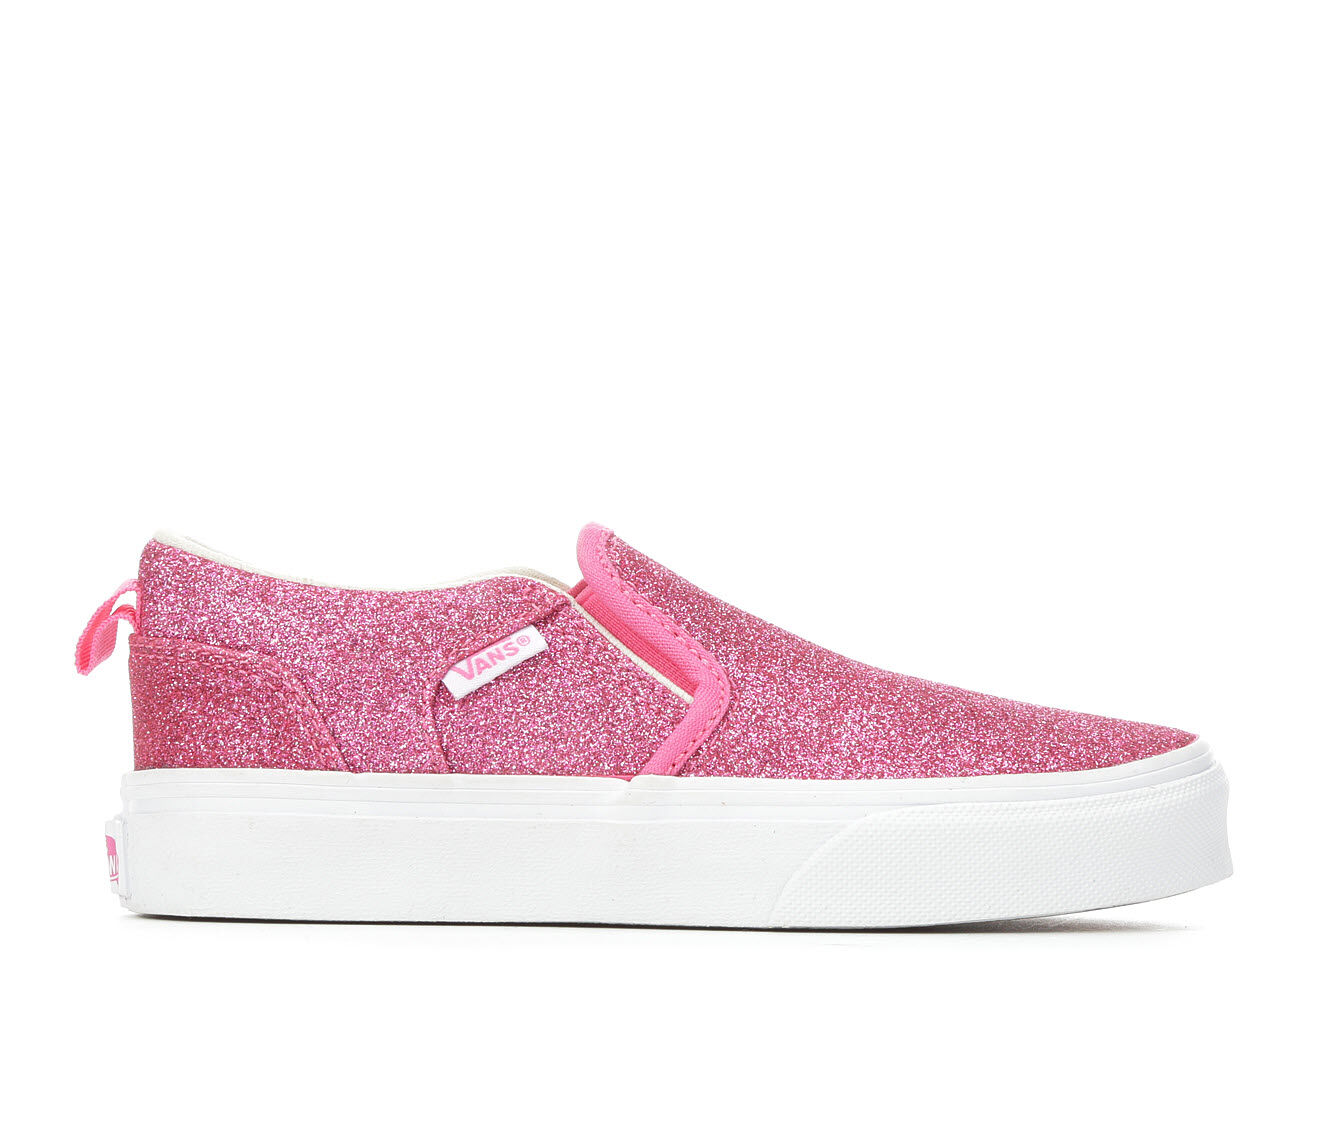 Kids' Shoes & Sneakers | Childrens Shoes